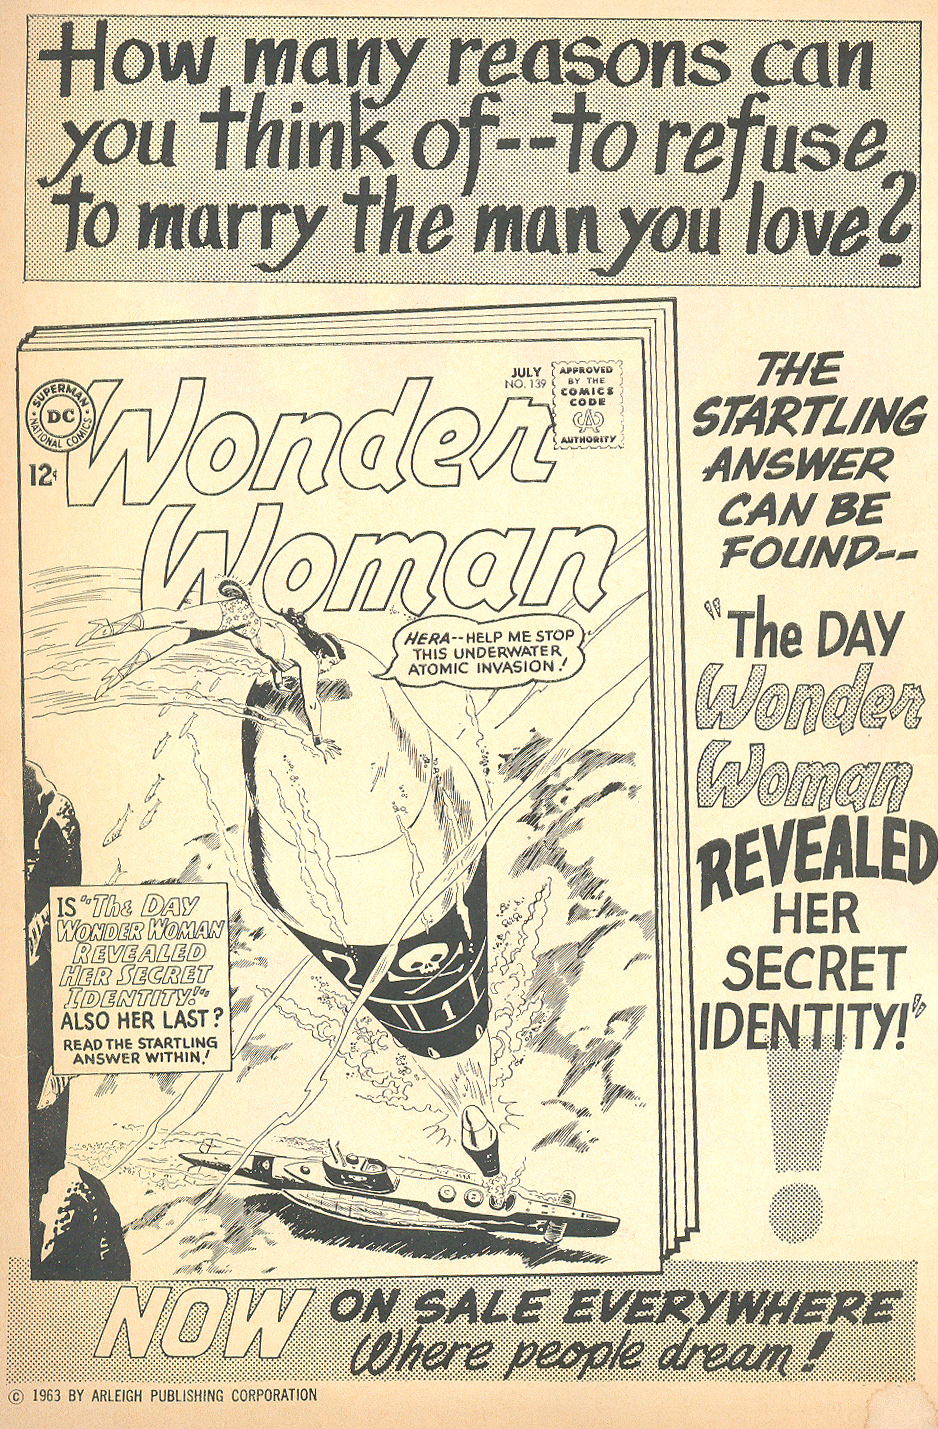 Wonder Woman Ad from Falling in Love #60 (July 1963)